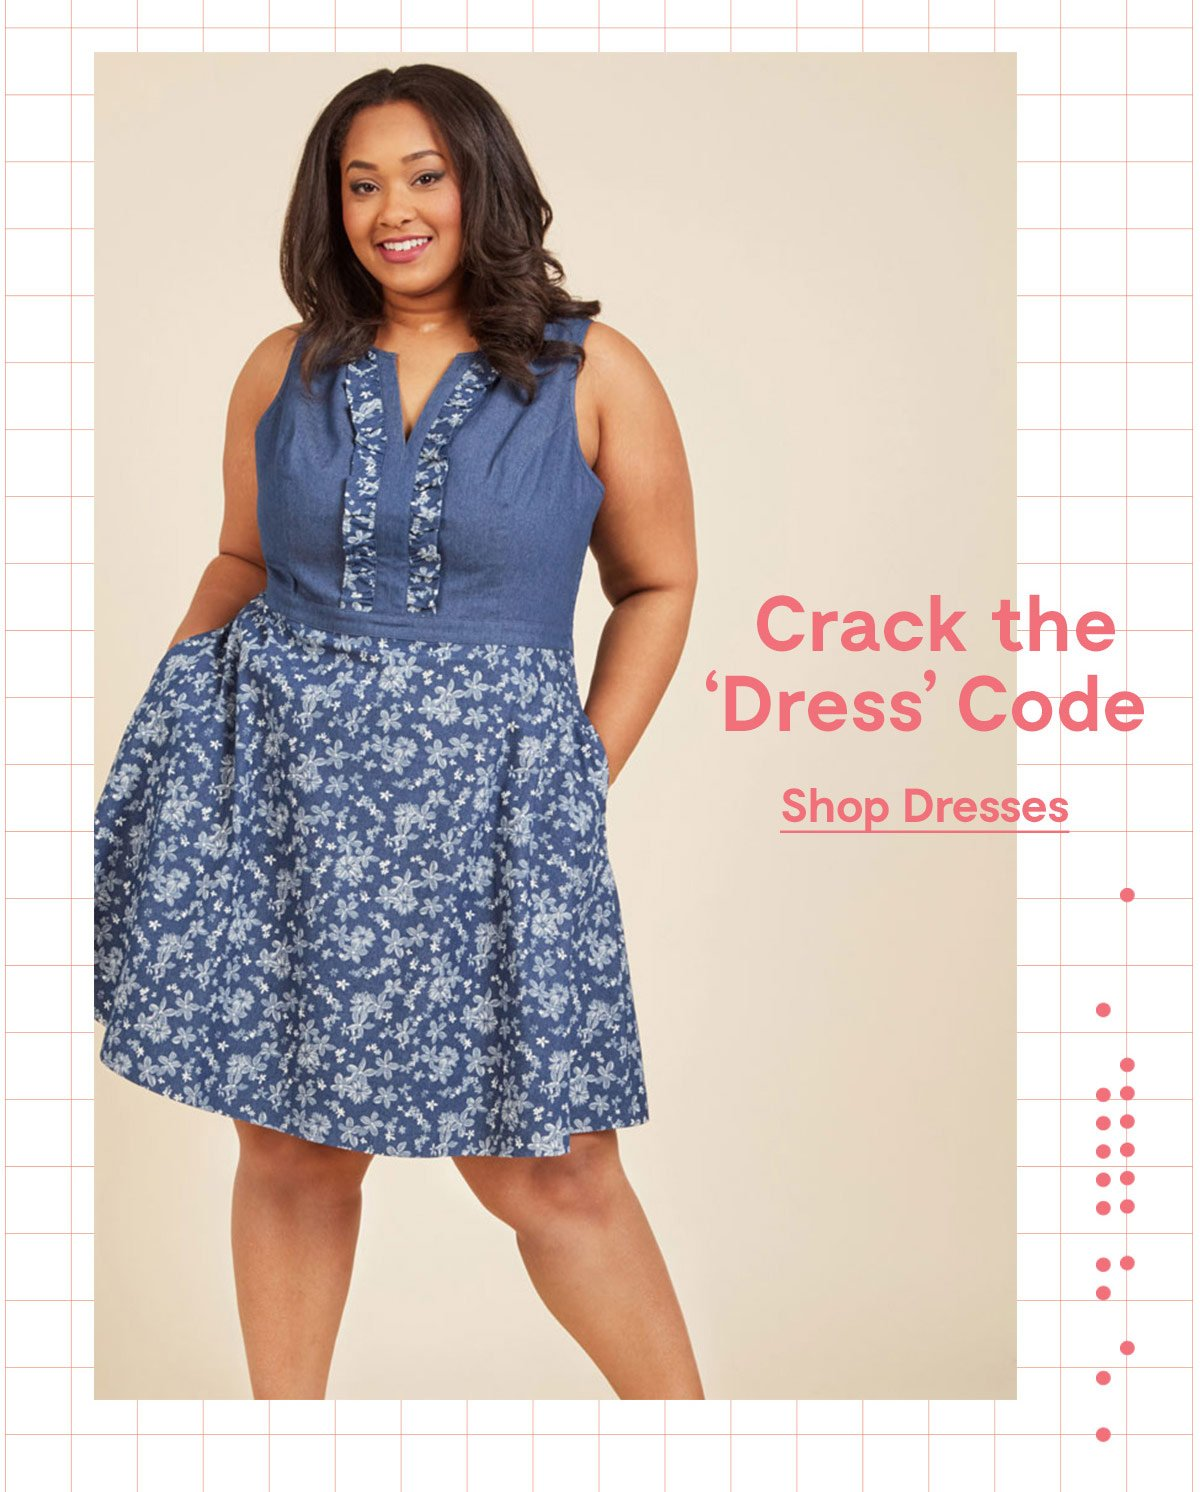 Crack the 'Dress' Code Shop Dresses >>